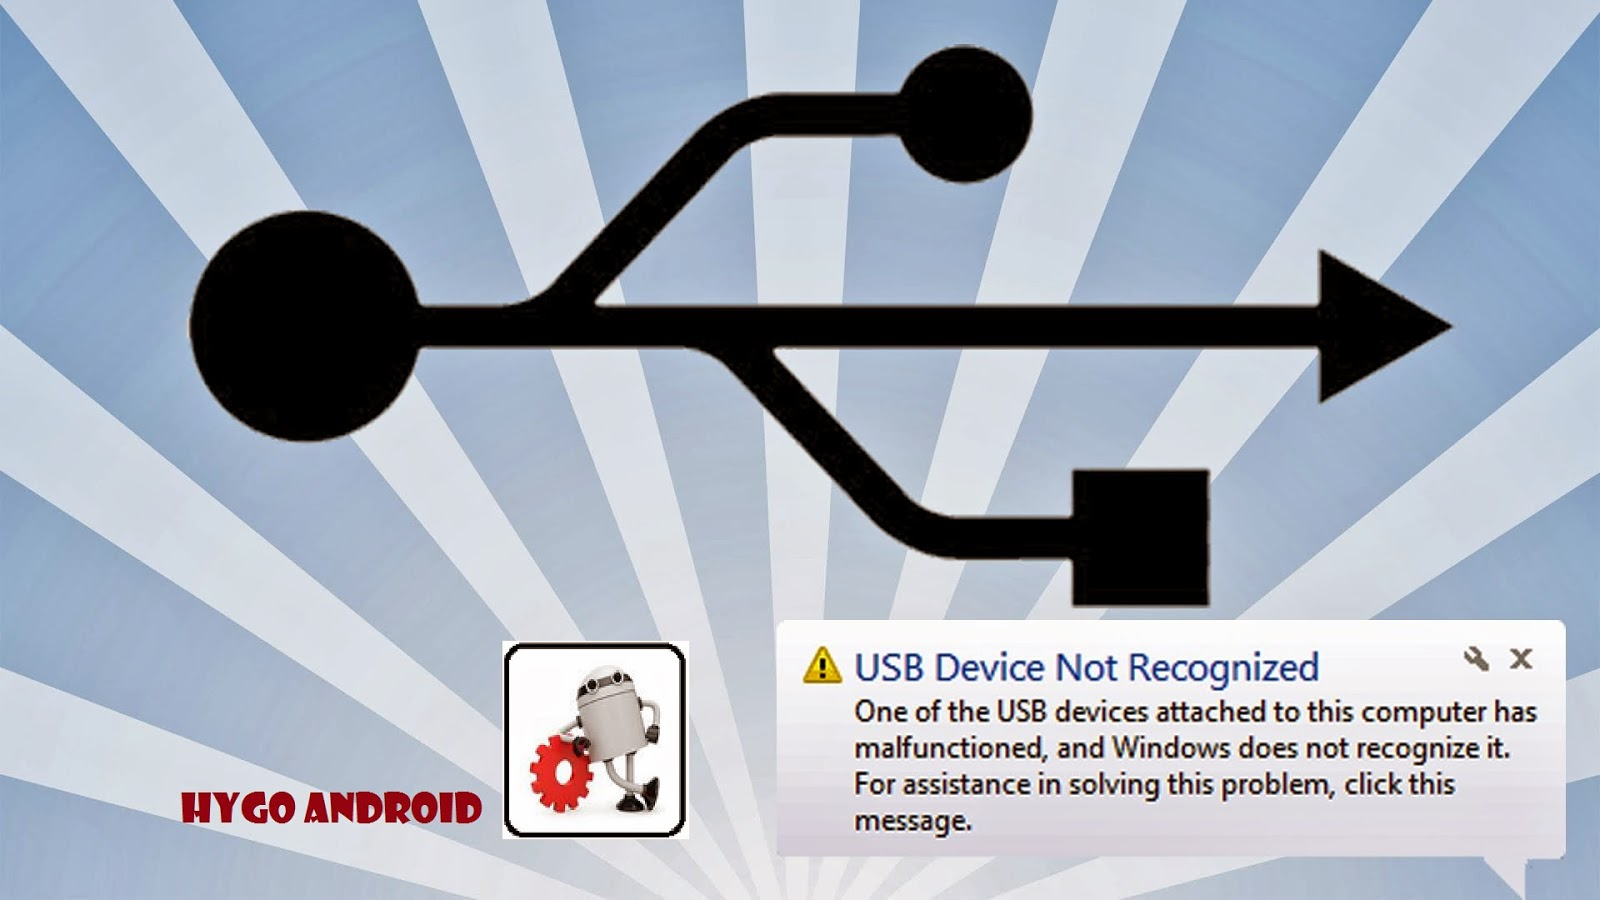 how to fix Usb device not recognized with PC gt-p1000